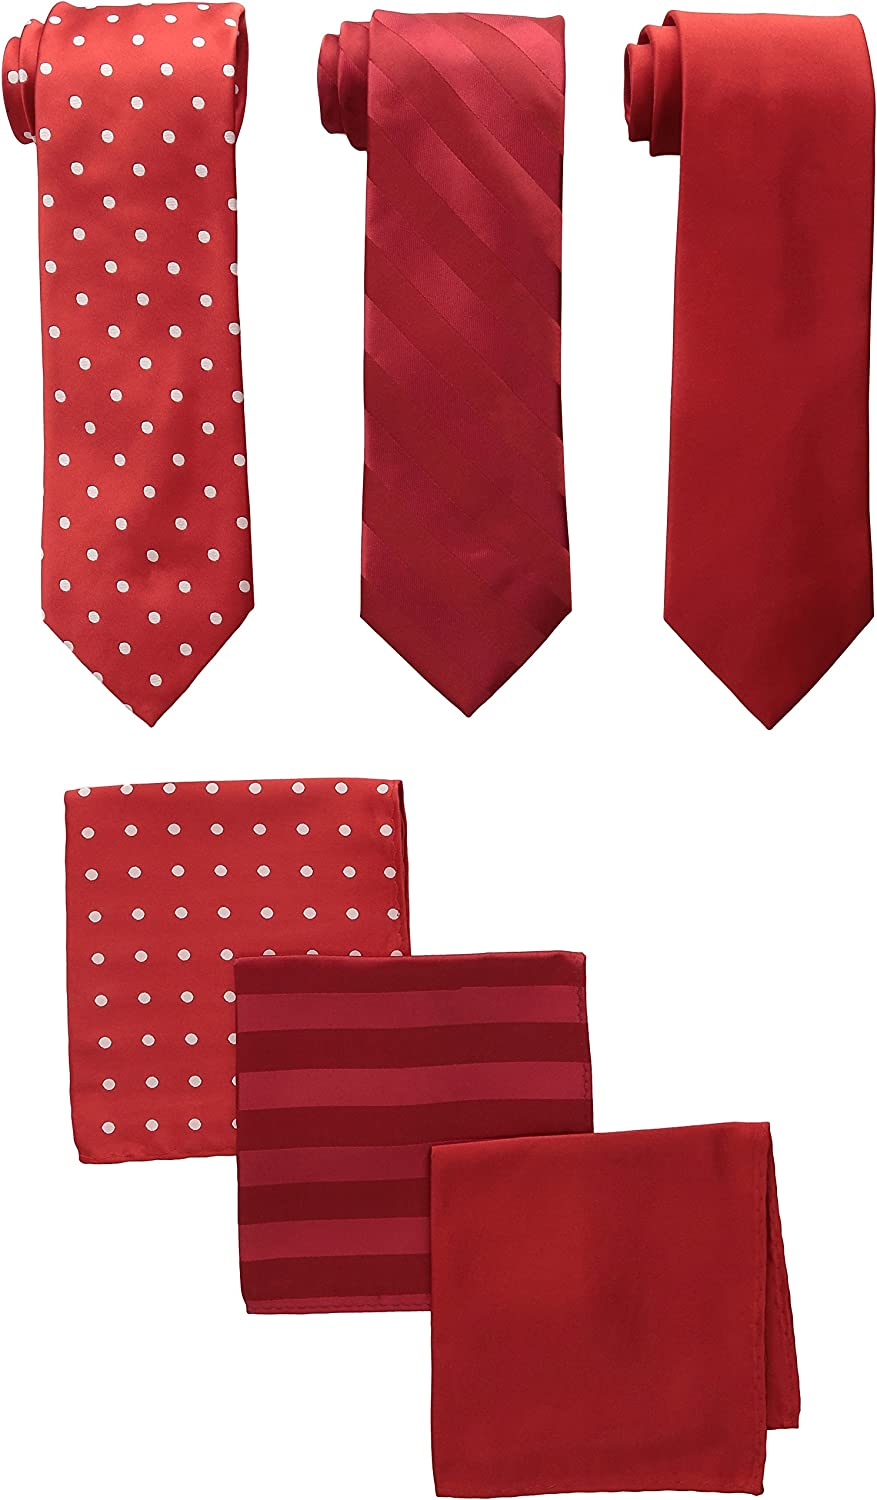 Stacy Adams Men's 3 Pack Satin Neckties Solid Striped Dots with Pocket Squares, One Size